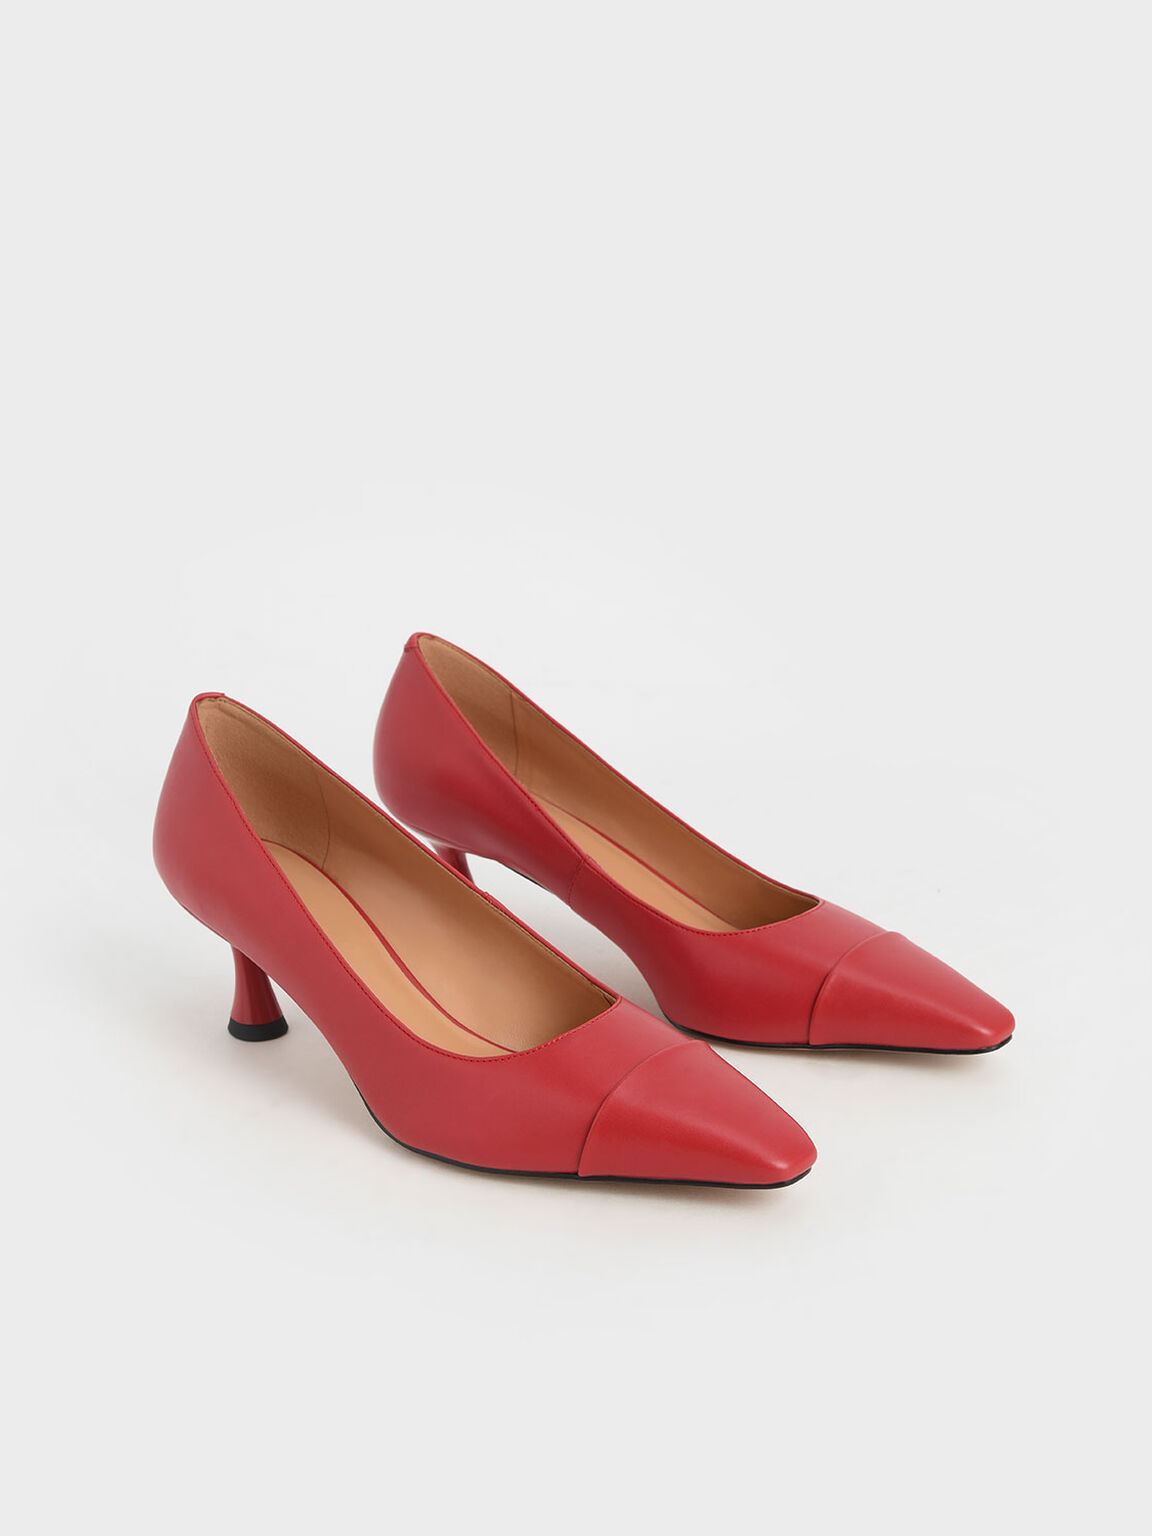 Spool Heel Toe Cap Pumps, Red, hi-res